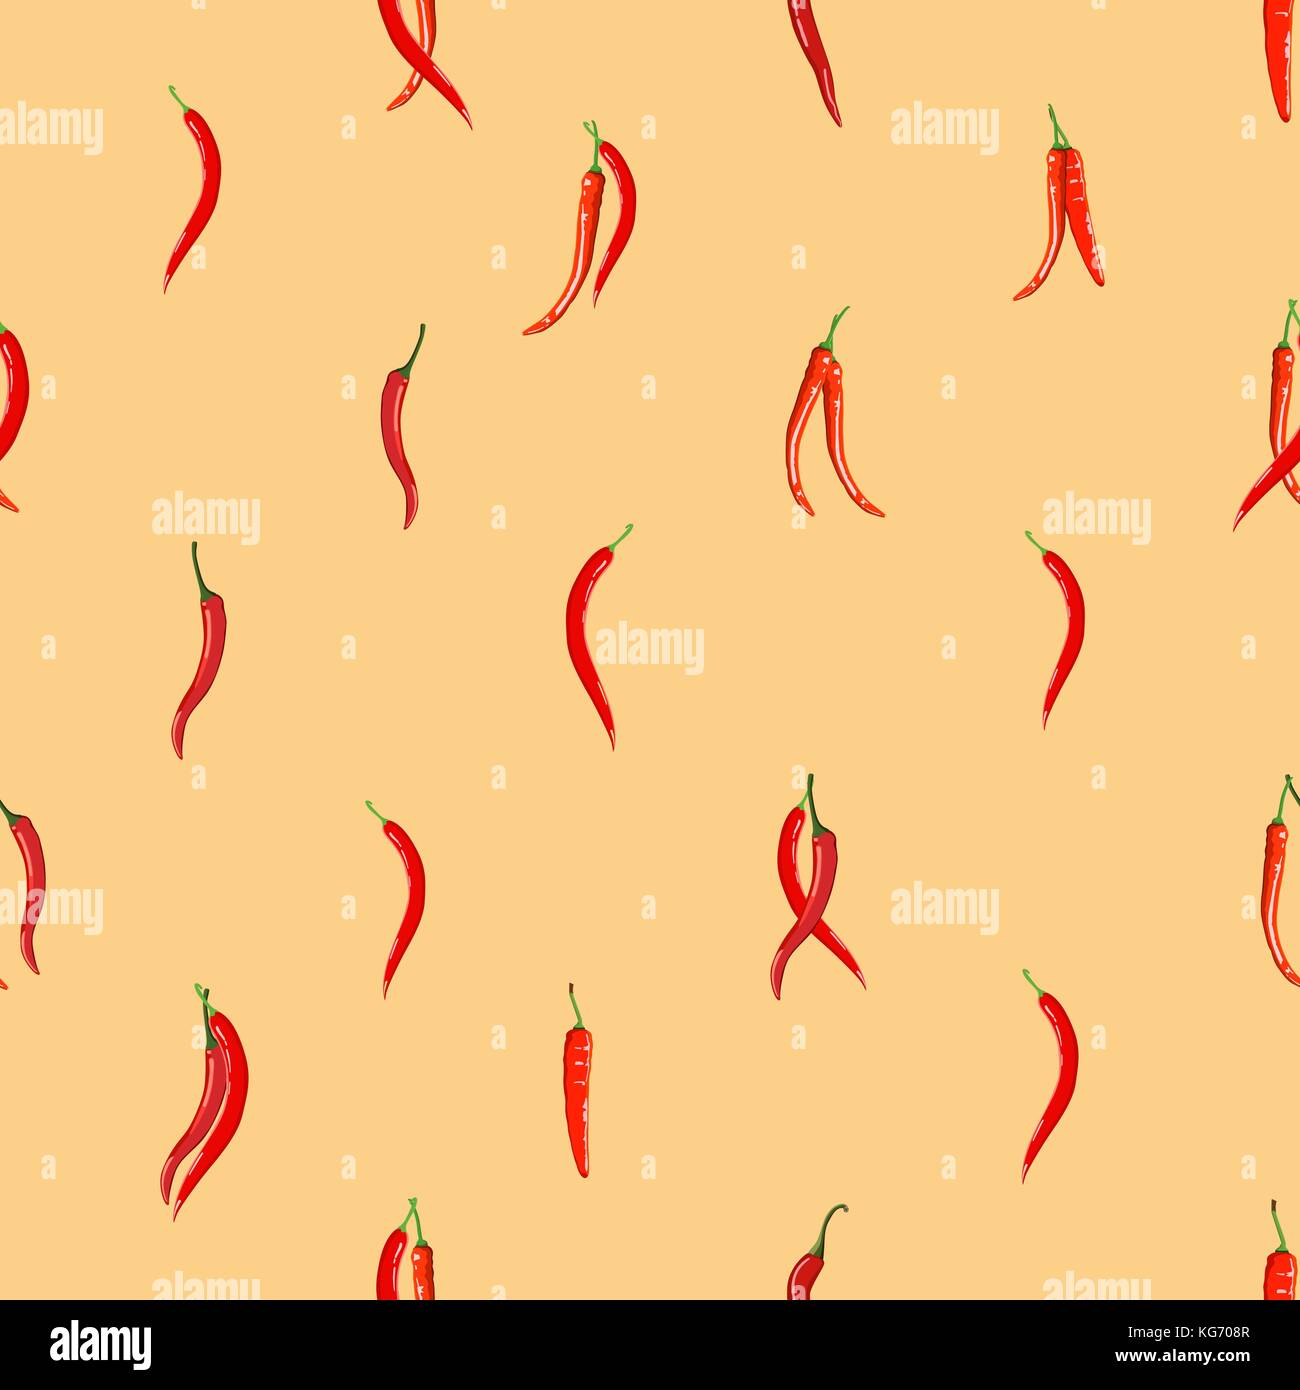 Red Hot Chili Peppers Pattern Seamless Wallpaper Background Stock